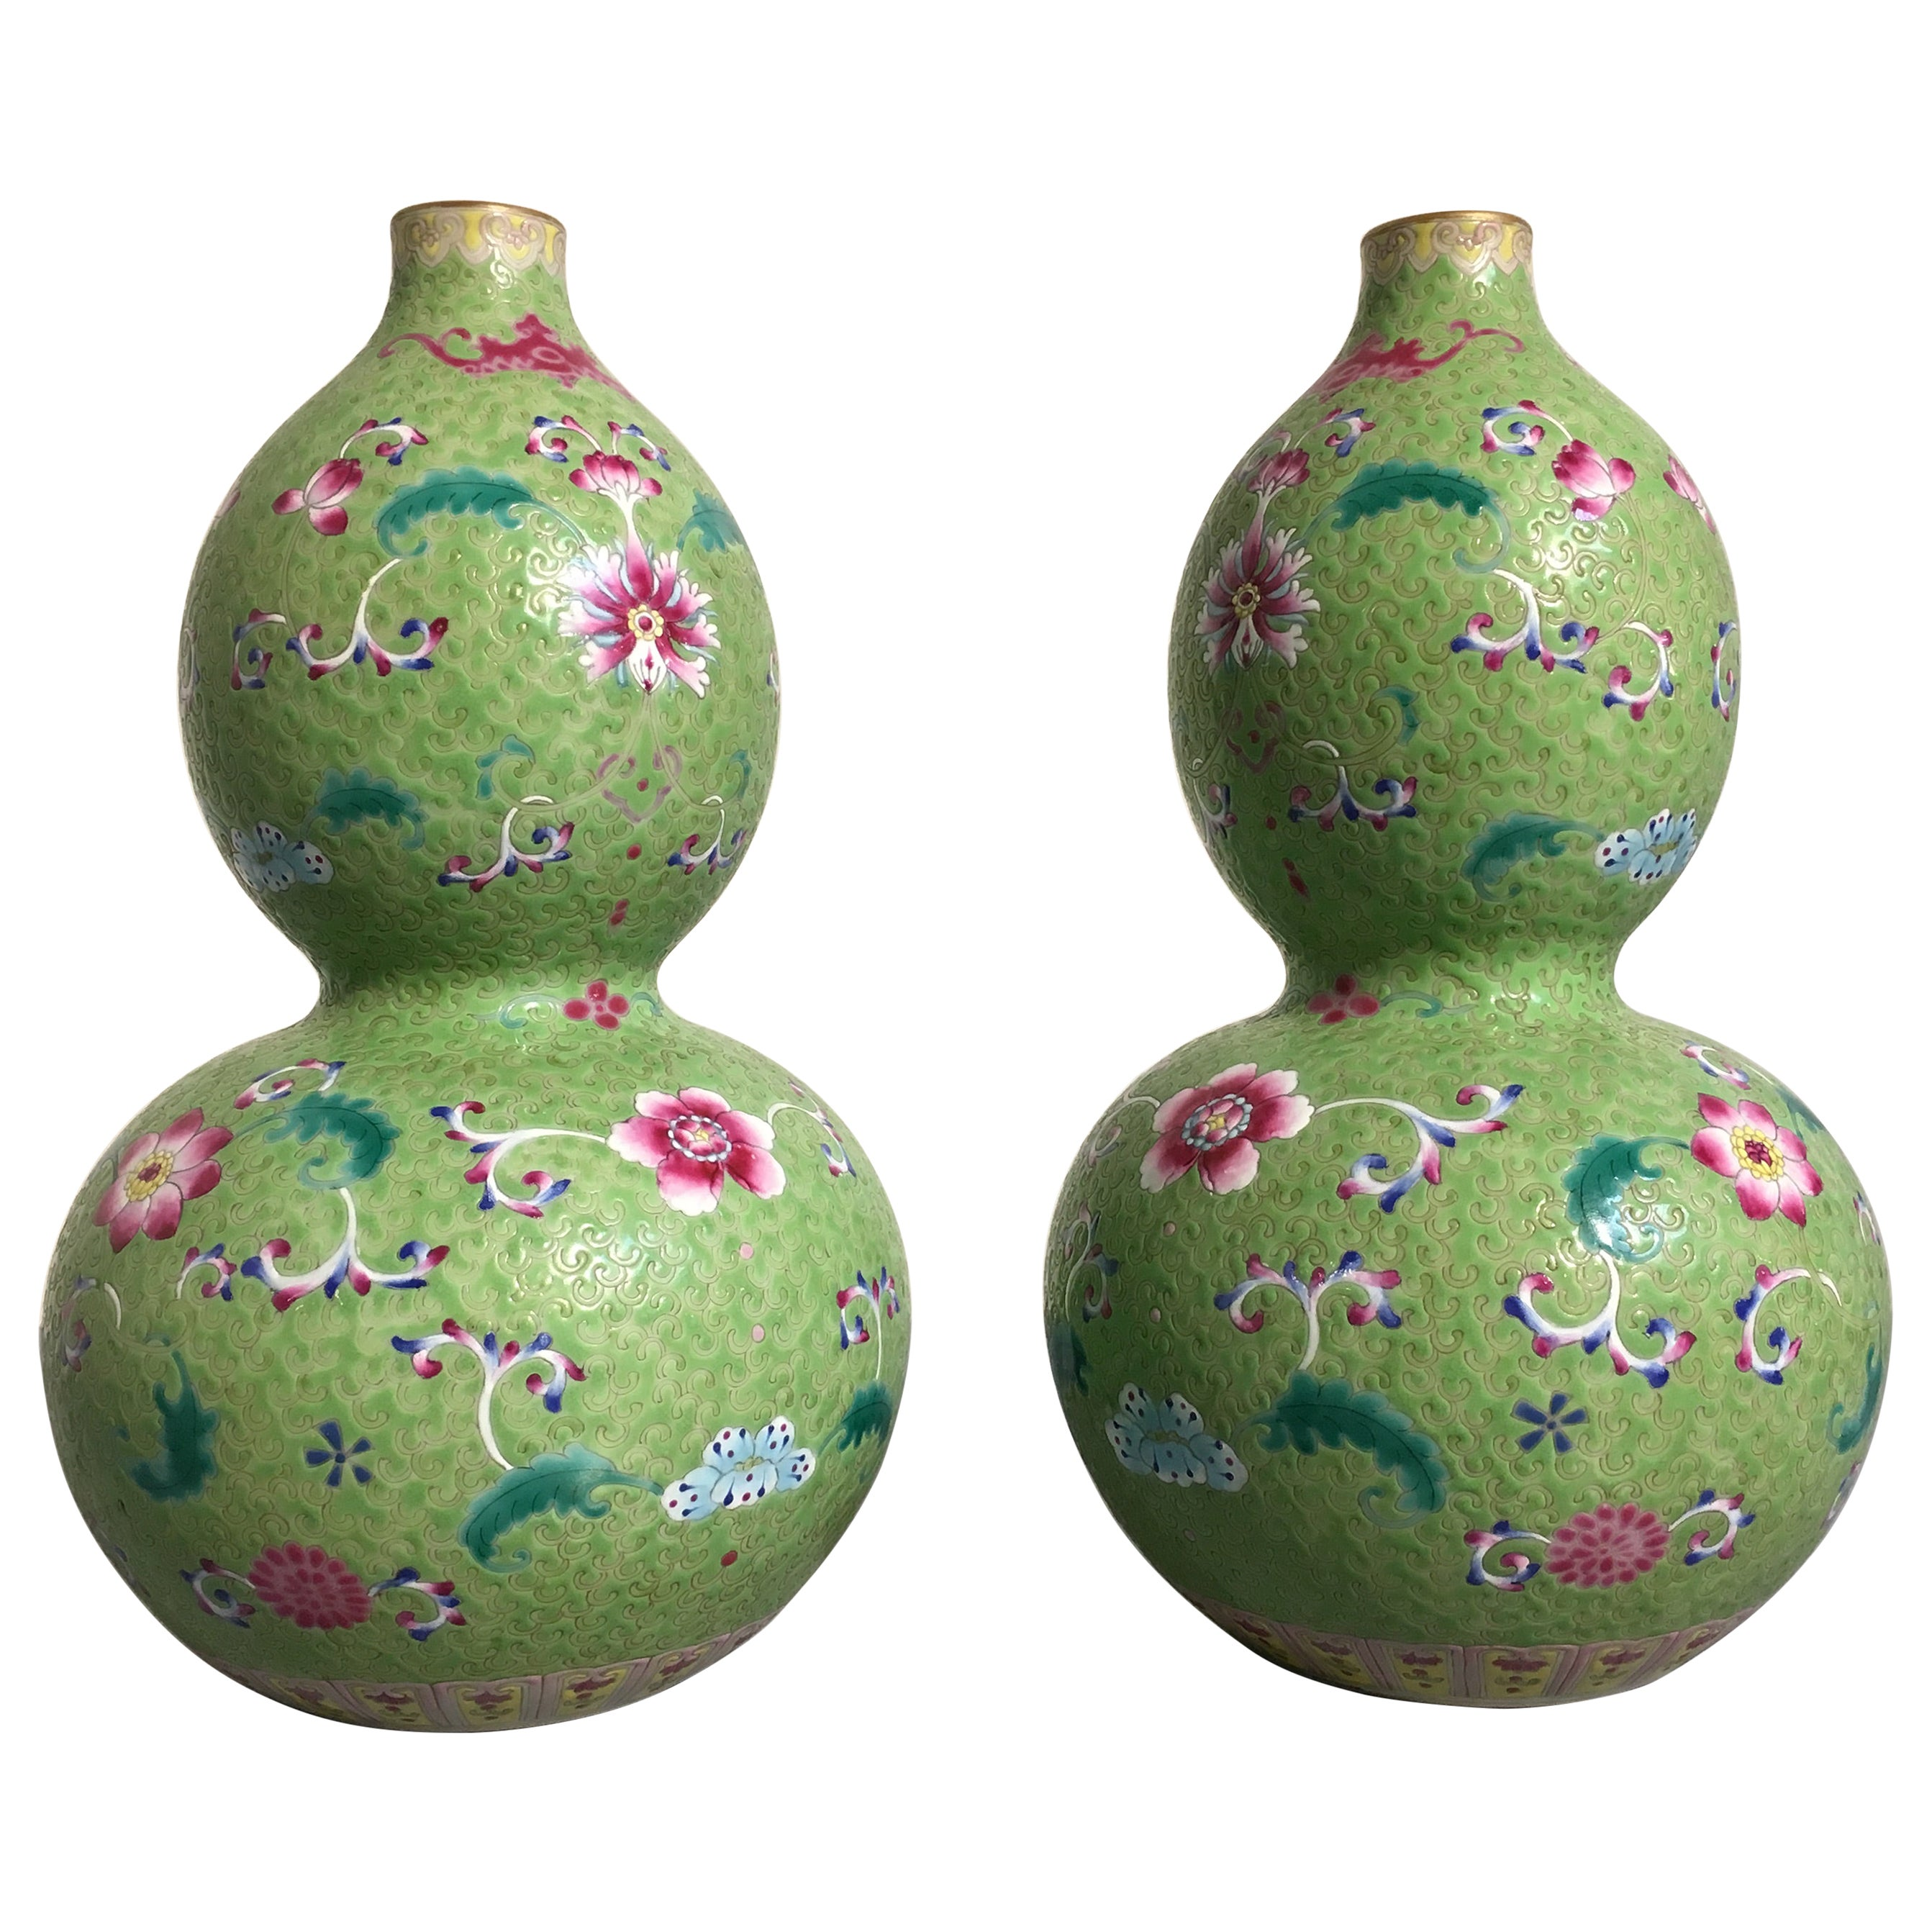 Pair of Chinese Lime Green Famille Rose Sgarffito Ground Vases, Republic Period